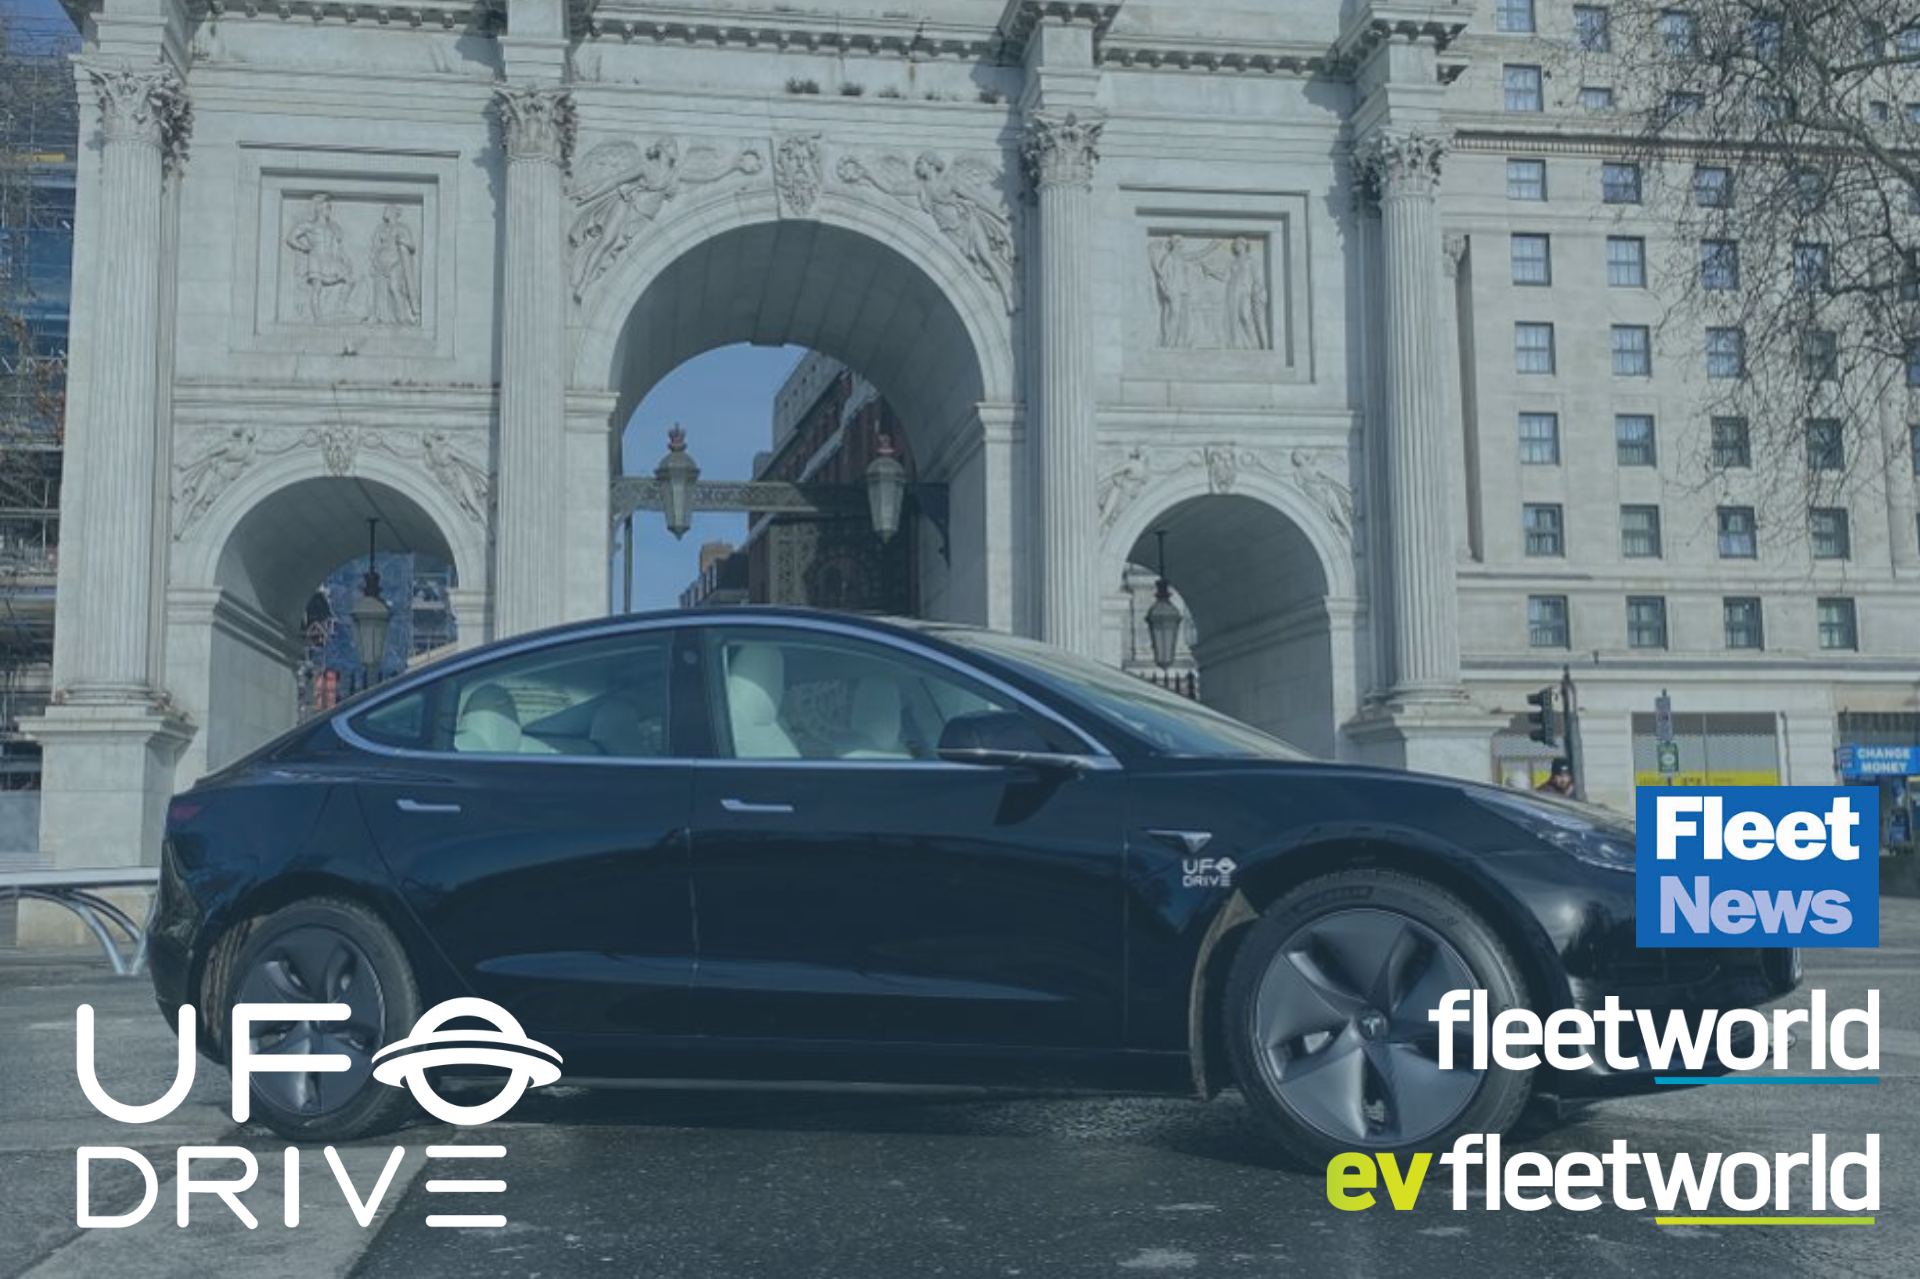 UFODRIVE all-electric car hire platform expands into London